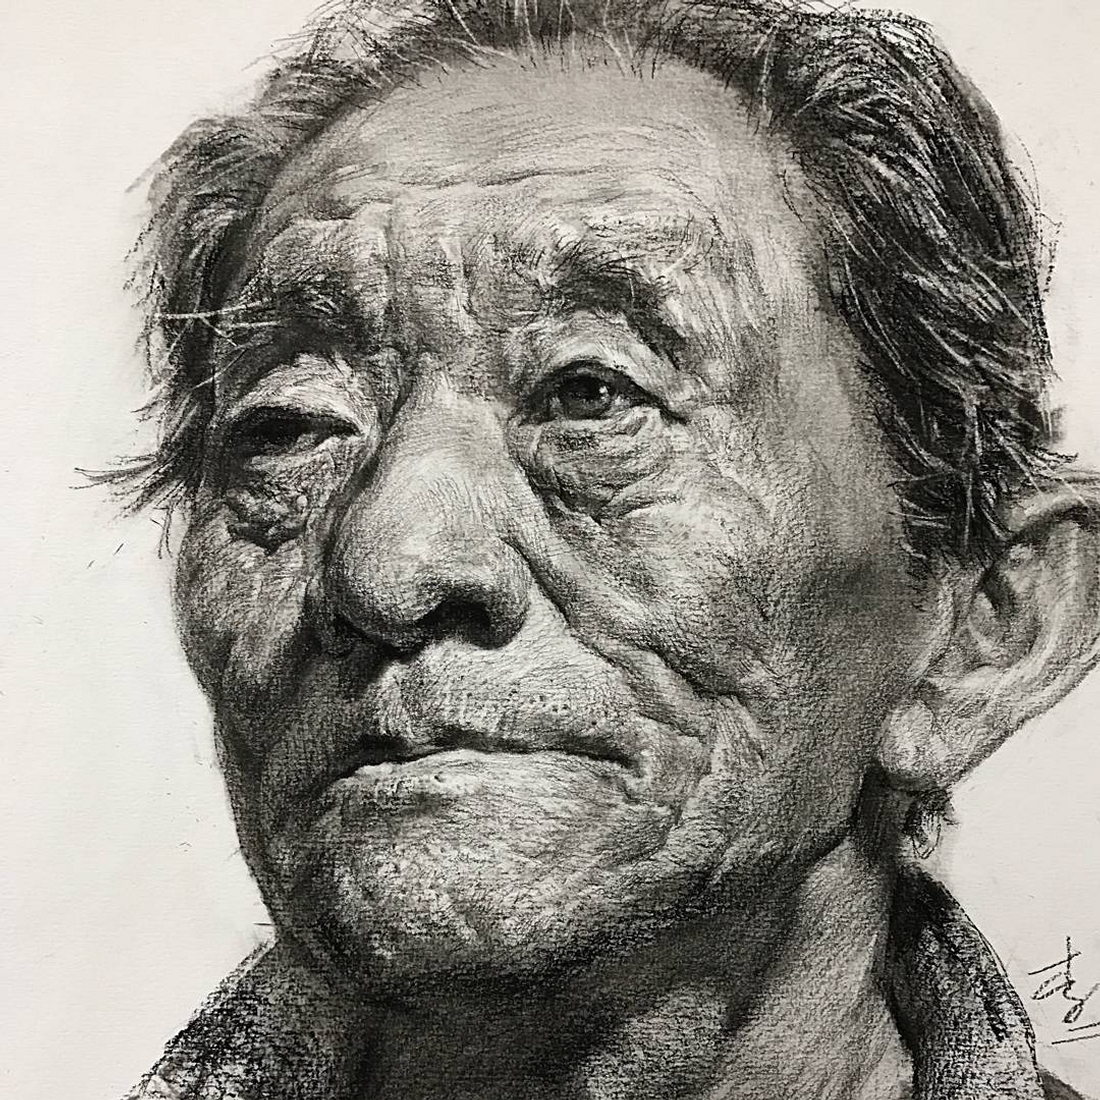 07-Lee-Charcoal-Portraits-full-of-Expressions-and-Emotions-www-designstack-co